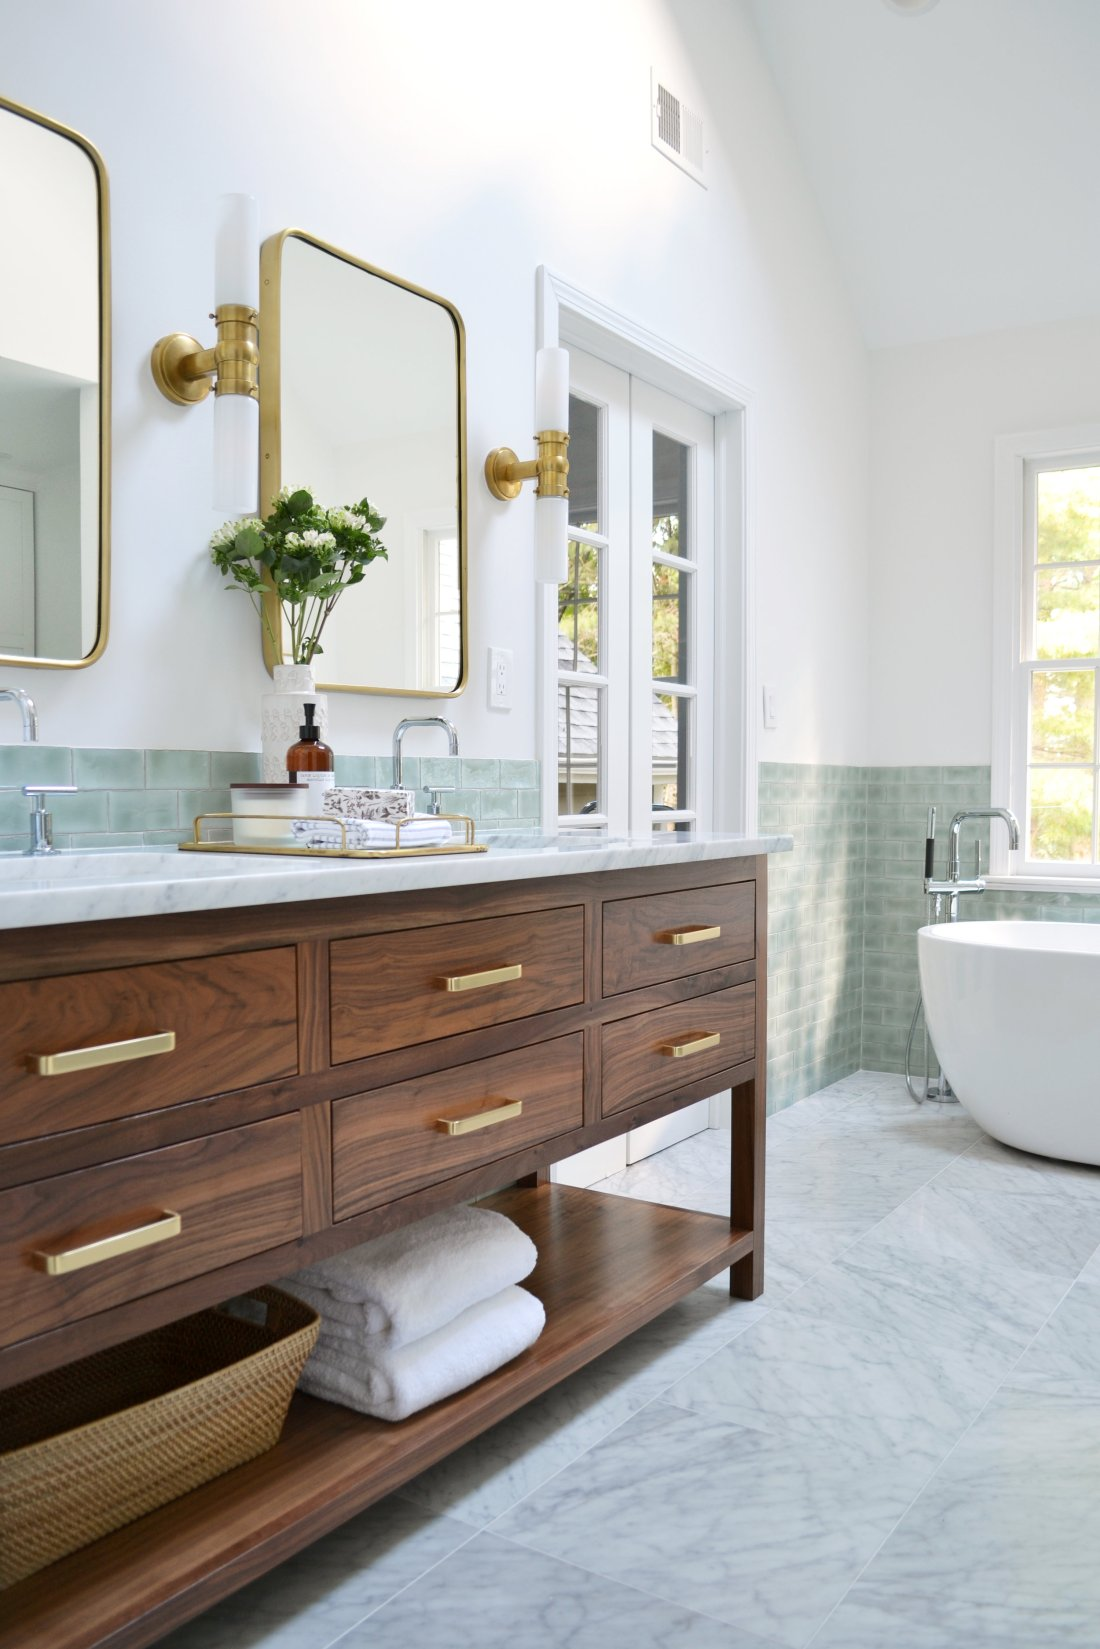 vanity overall angle.jpg | Bathroom Makeover Ideas and Inspiration by popular Virginia life and style blog, Fynes Designs: image of bathroom vanity by Rehabitat Interiors.